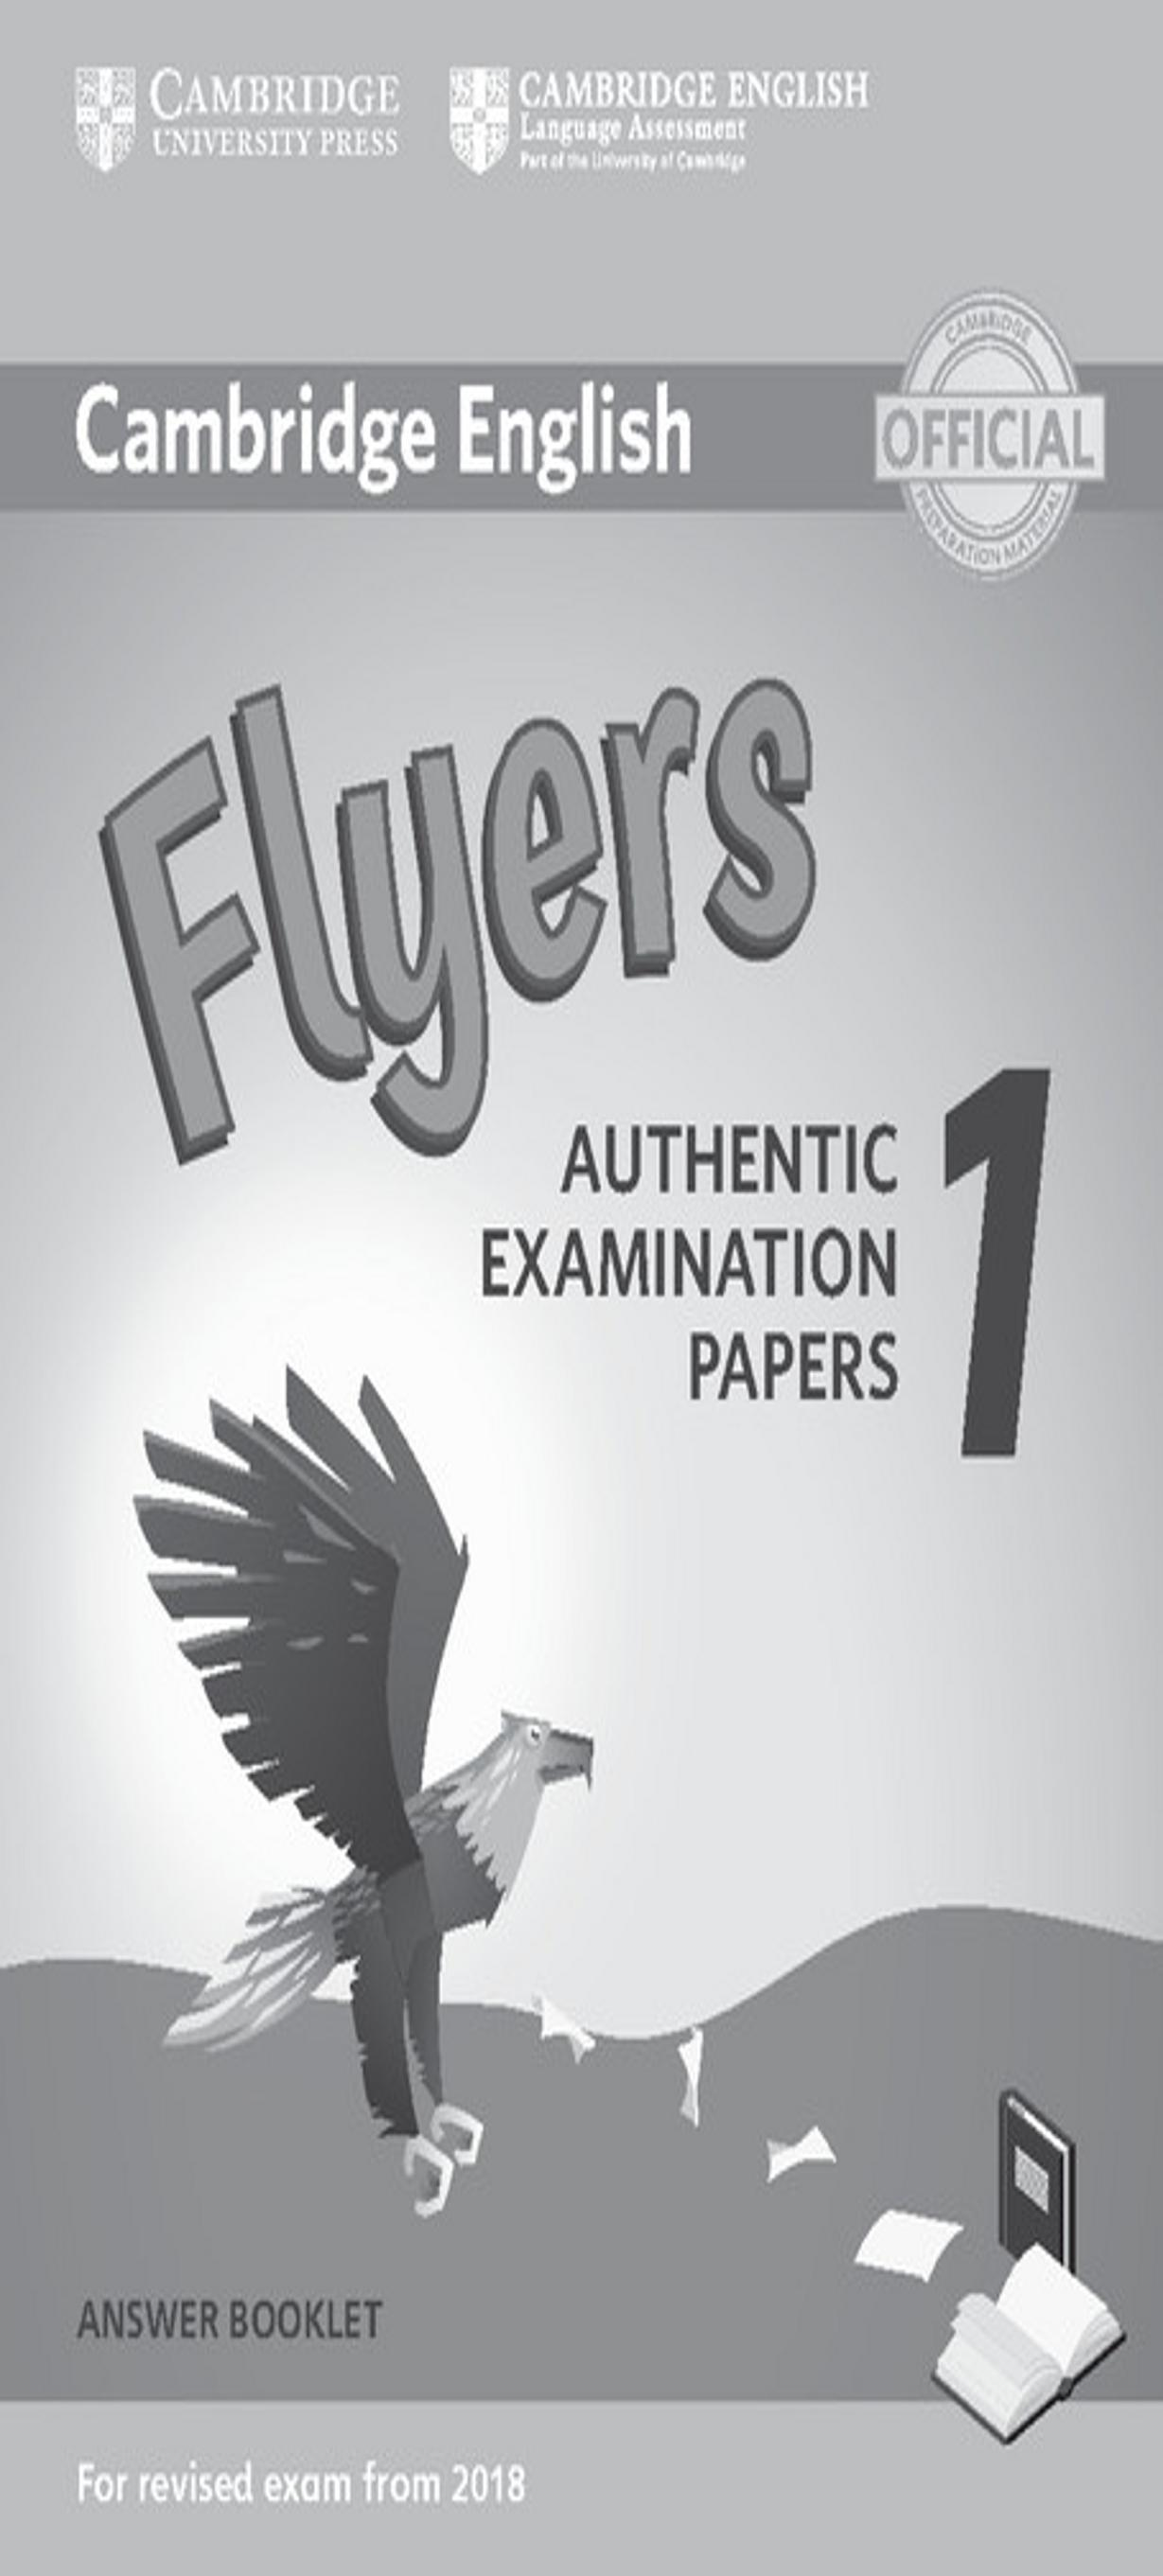 CAMBRIDGE FLYERS 1 Answer Booklet  Exam Papers Revised Exam 2018